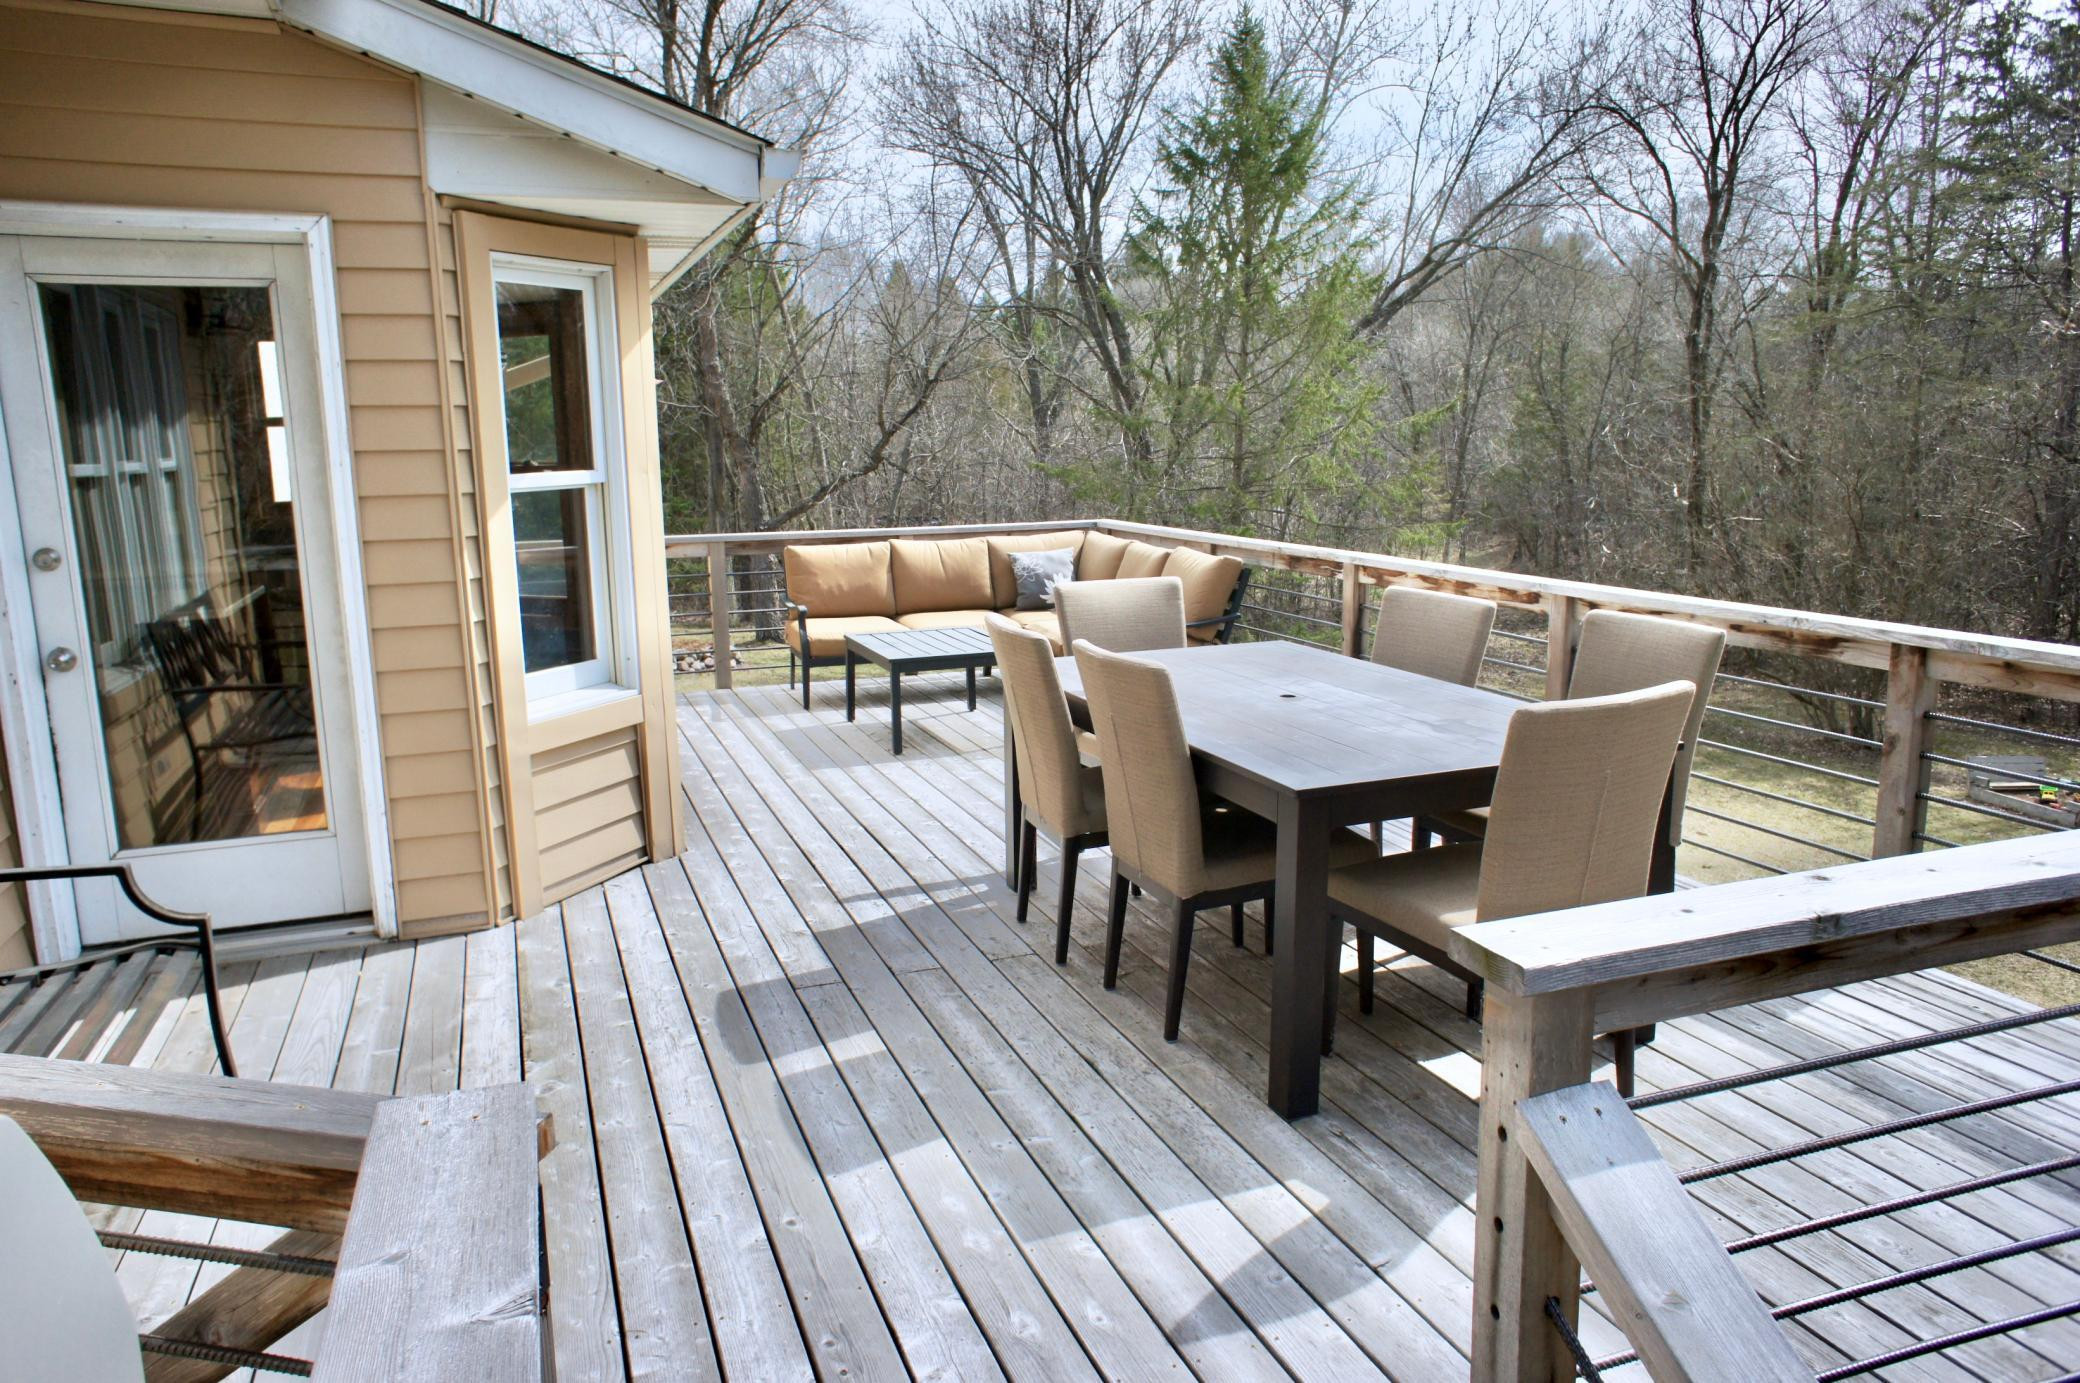 What a relaxing and peaceful outdoor setting with wonderful privacy ample space to entertain or just relax.